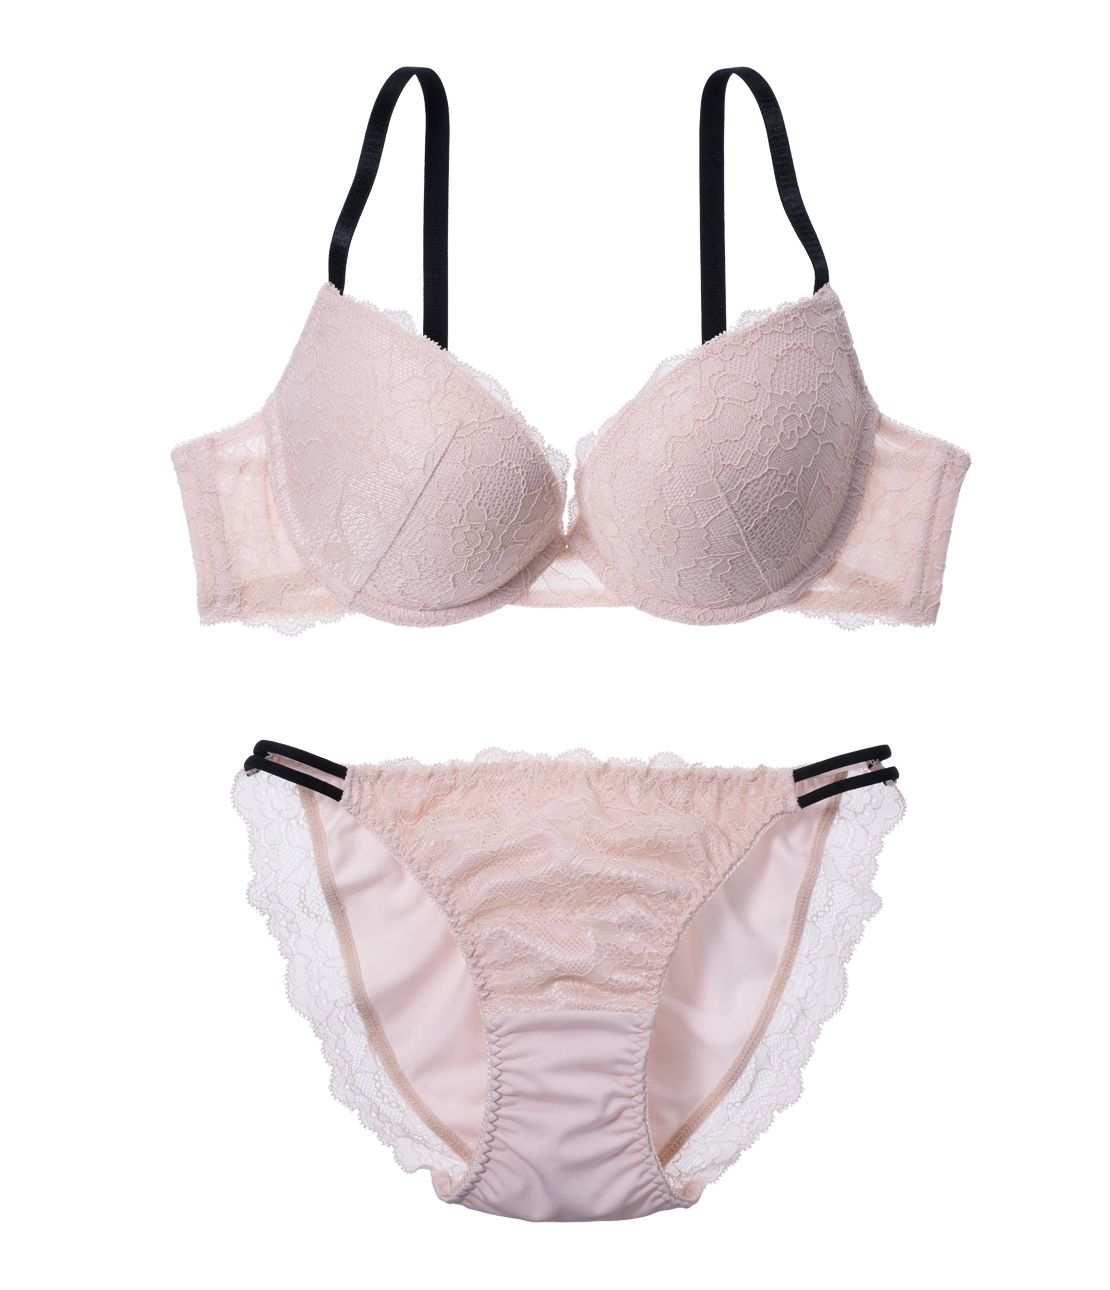 YM NEW simple lace bra set